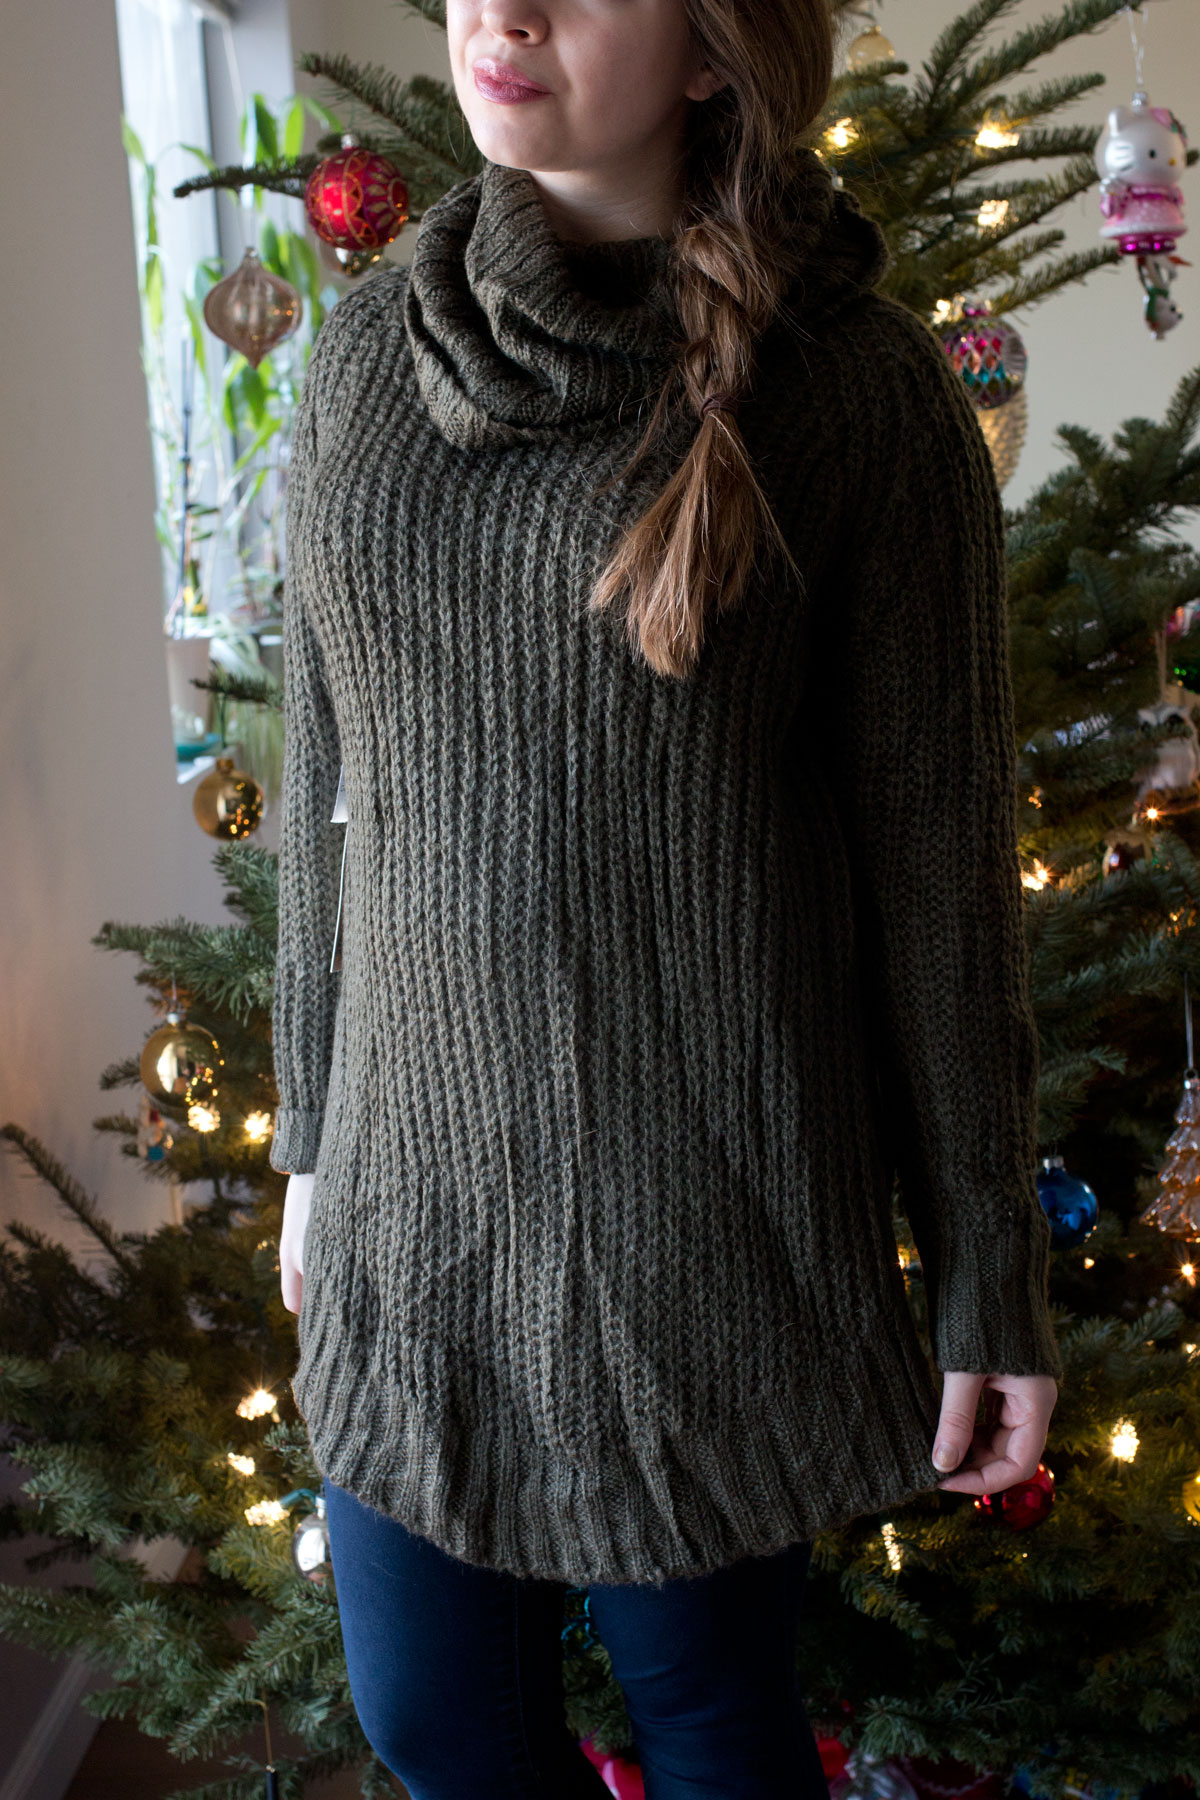 Nordstrom Half Yearly Sale 2015: Dreamers by Debut Cowl Neck Sweater // hellorigby seattle fashion & beauty blog